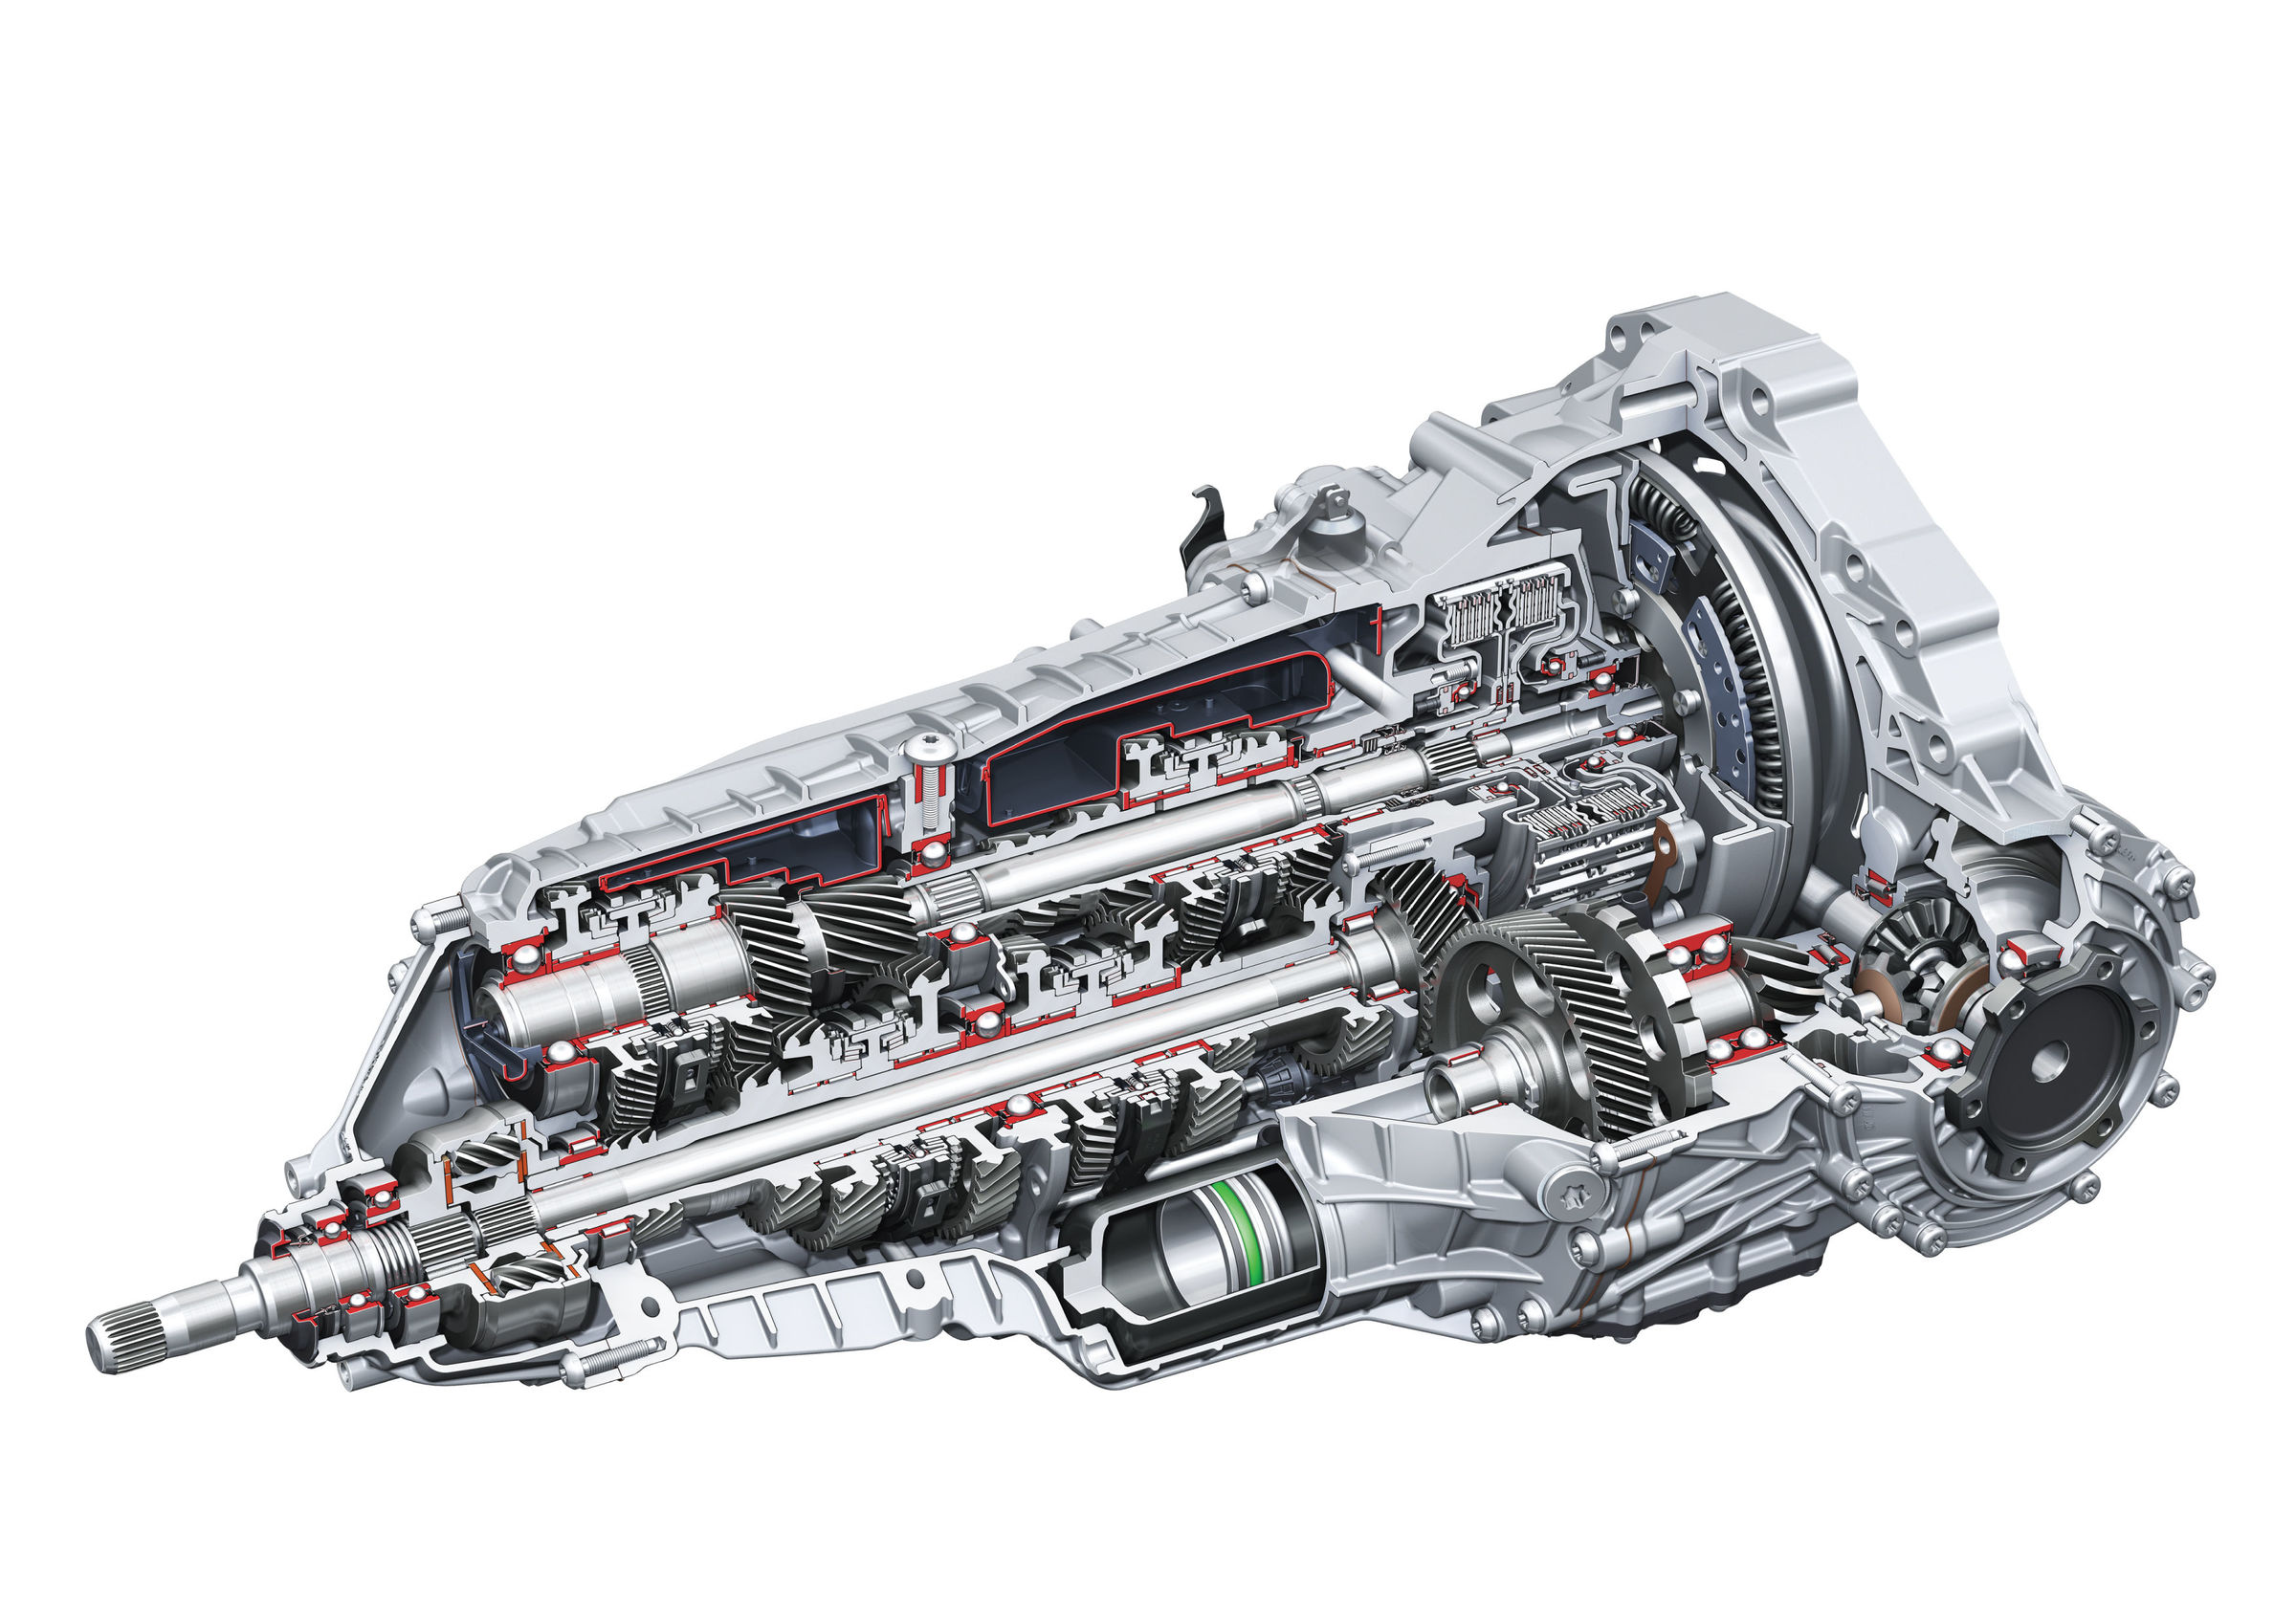 Drive System Audi Mediacenter It Was An Hydraulically Controlled Rear Wheel Transmission S Tronic Dual Clutch